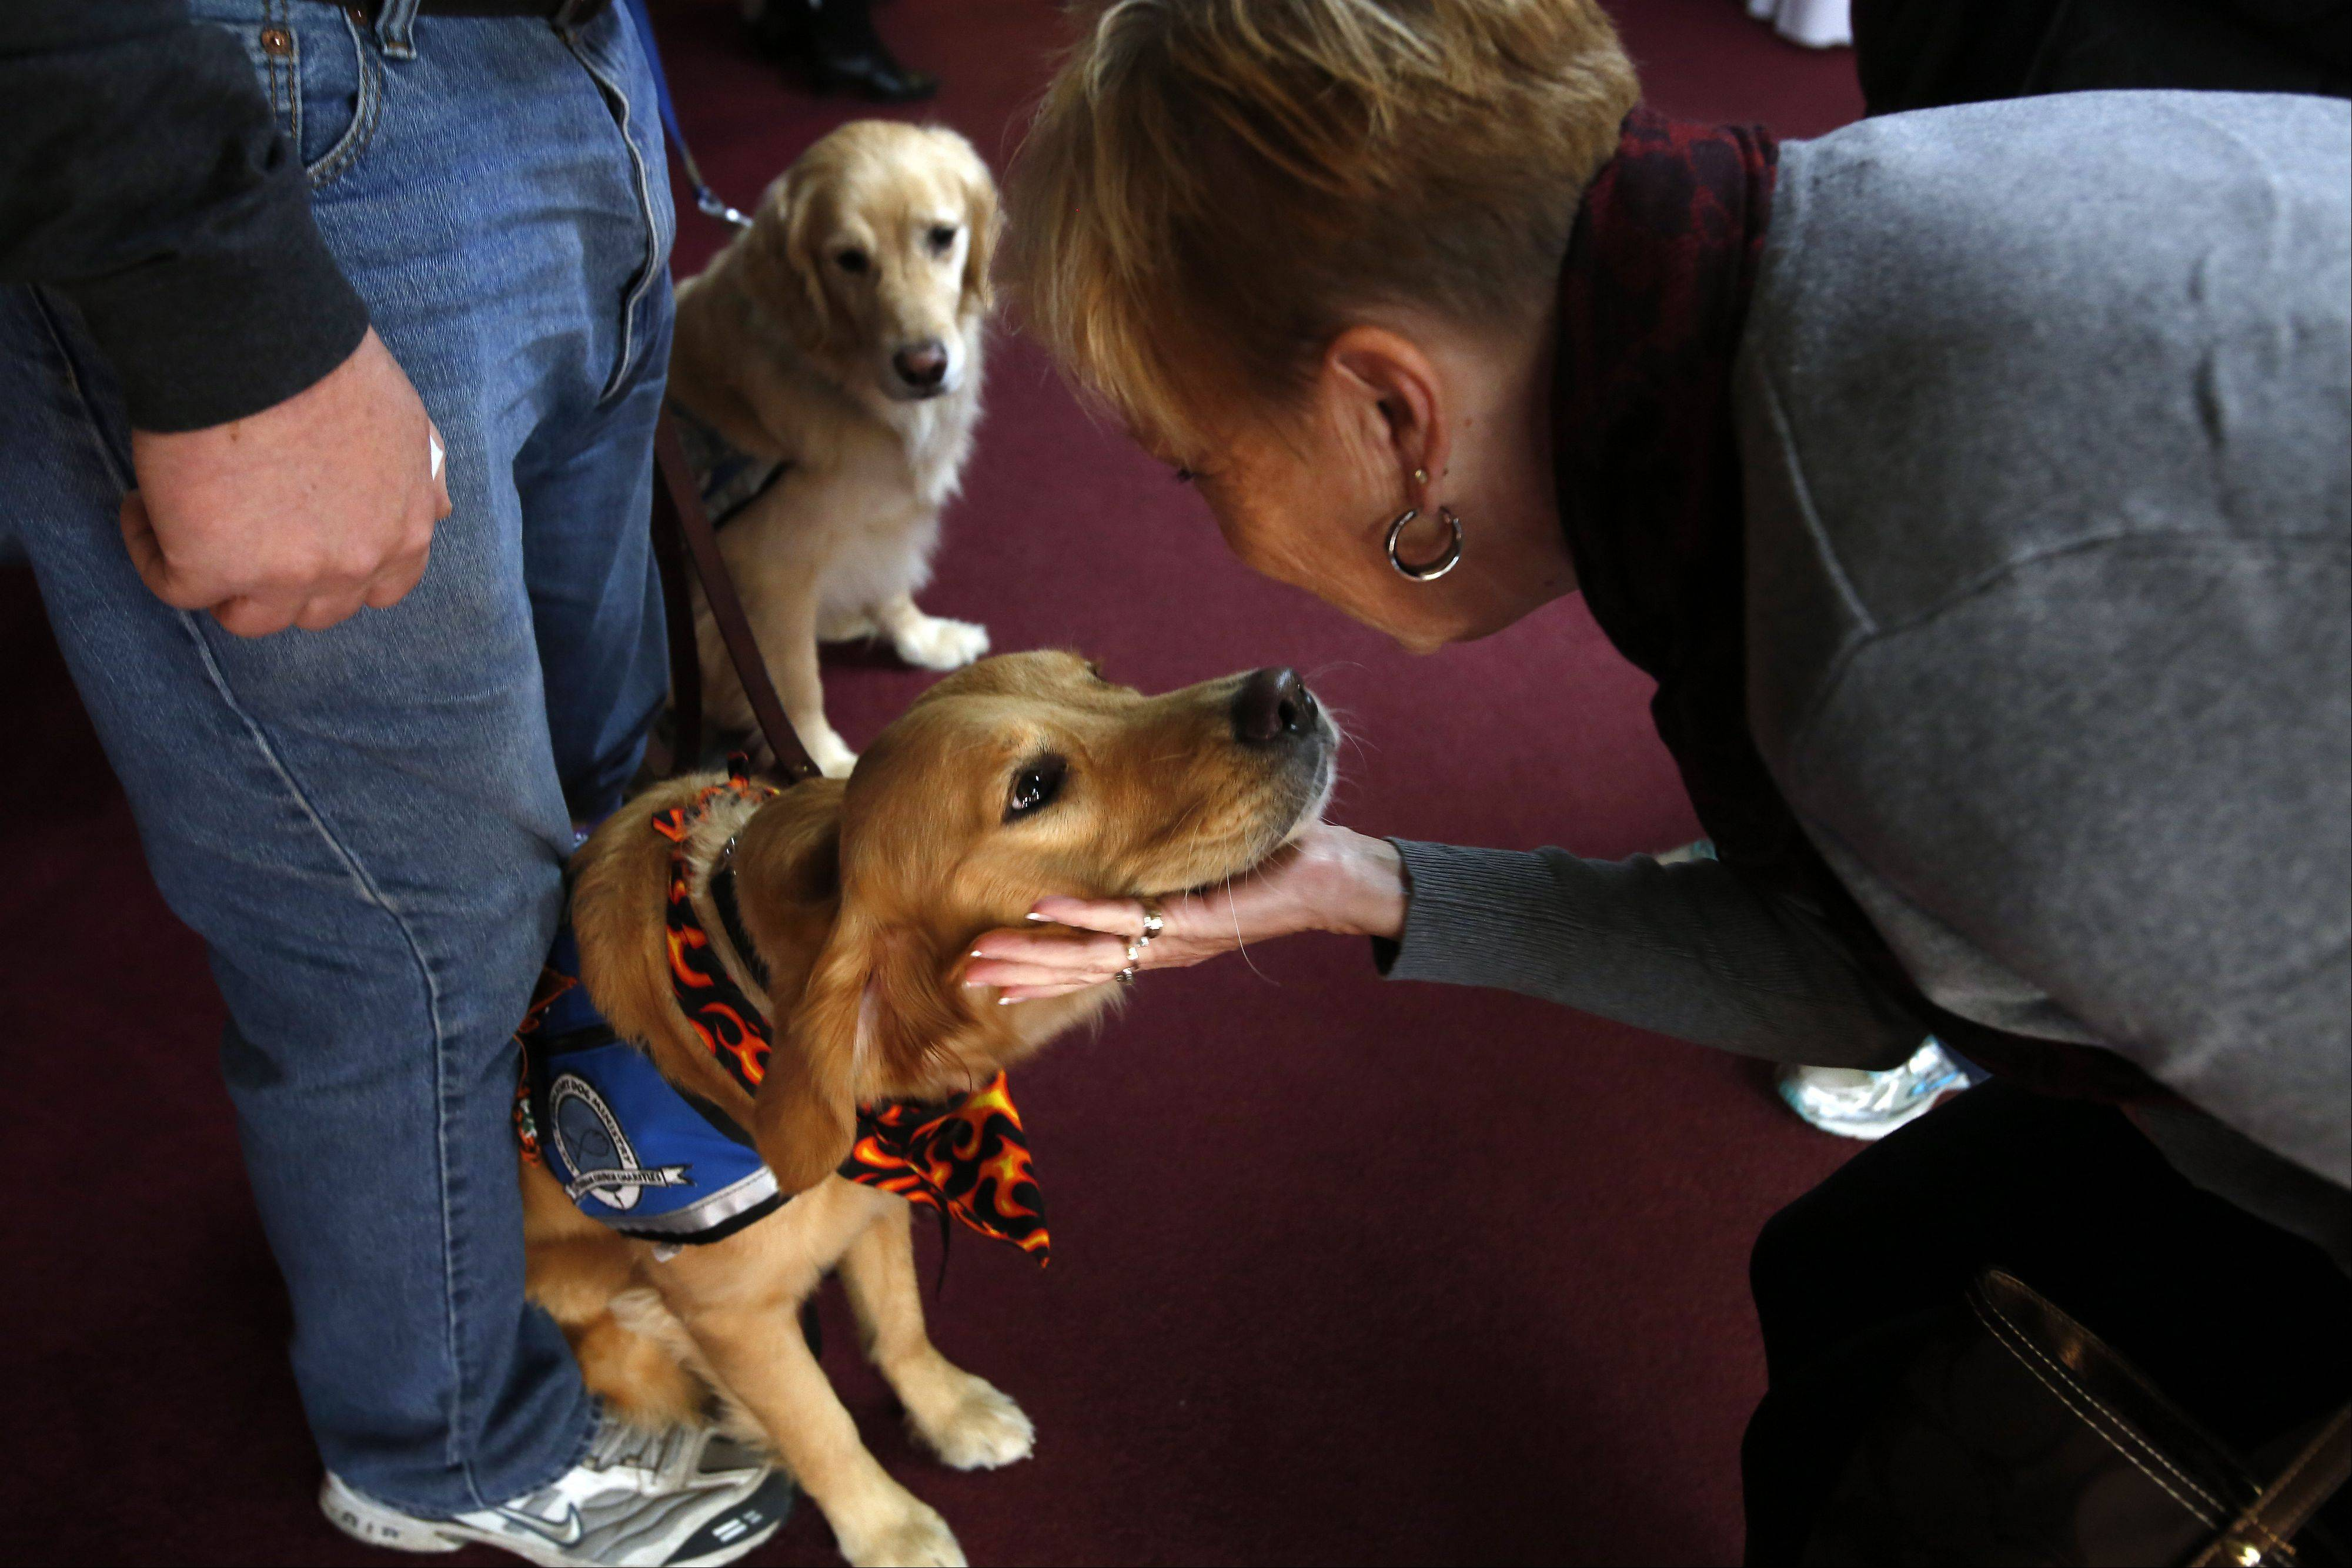 Kim Wiseman greets comfort dog Susie of Arlington Heights outside a church service in Washington, Ill., this week. Wiseman's sister-in-law, who lost her house in the disaster, will be staying with her throughout the holidays.